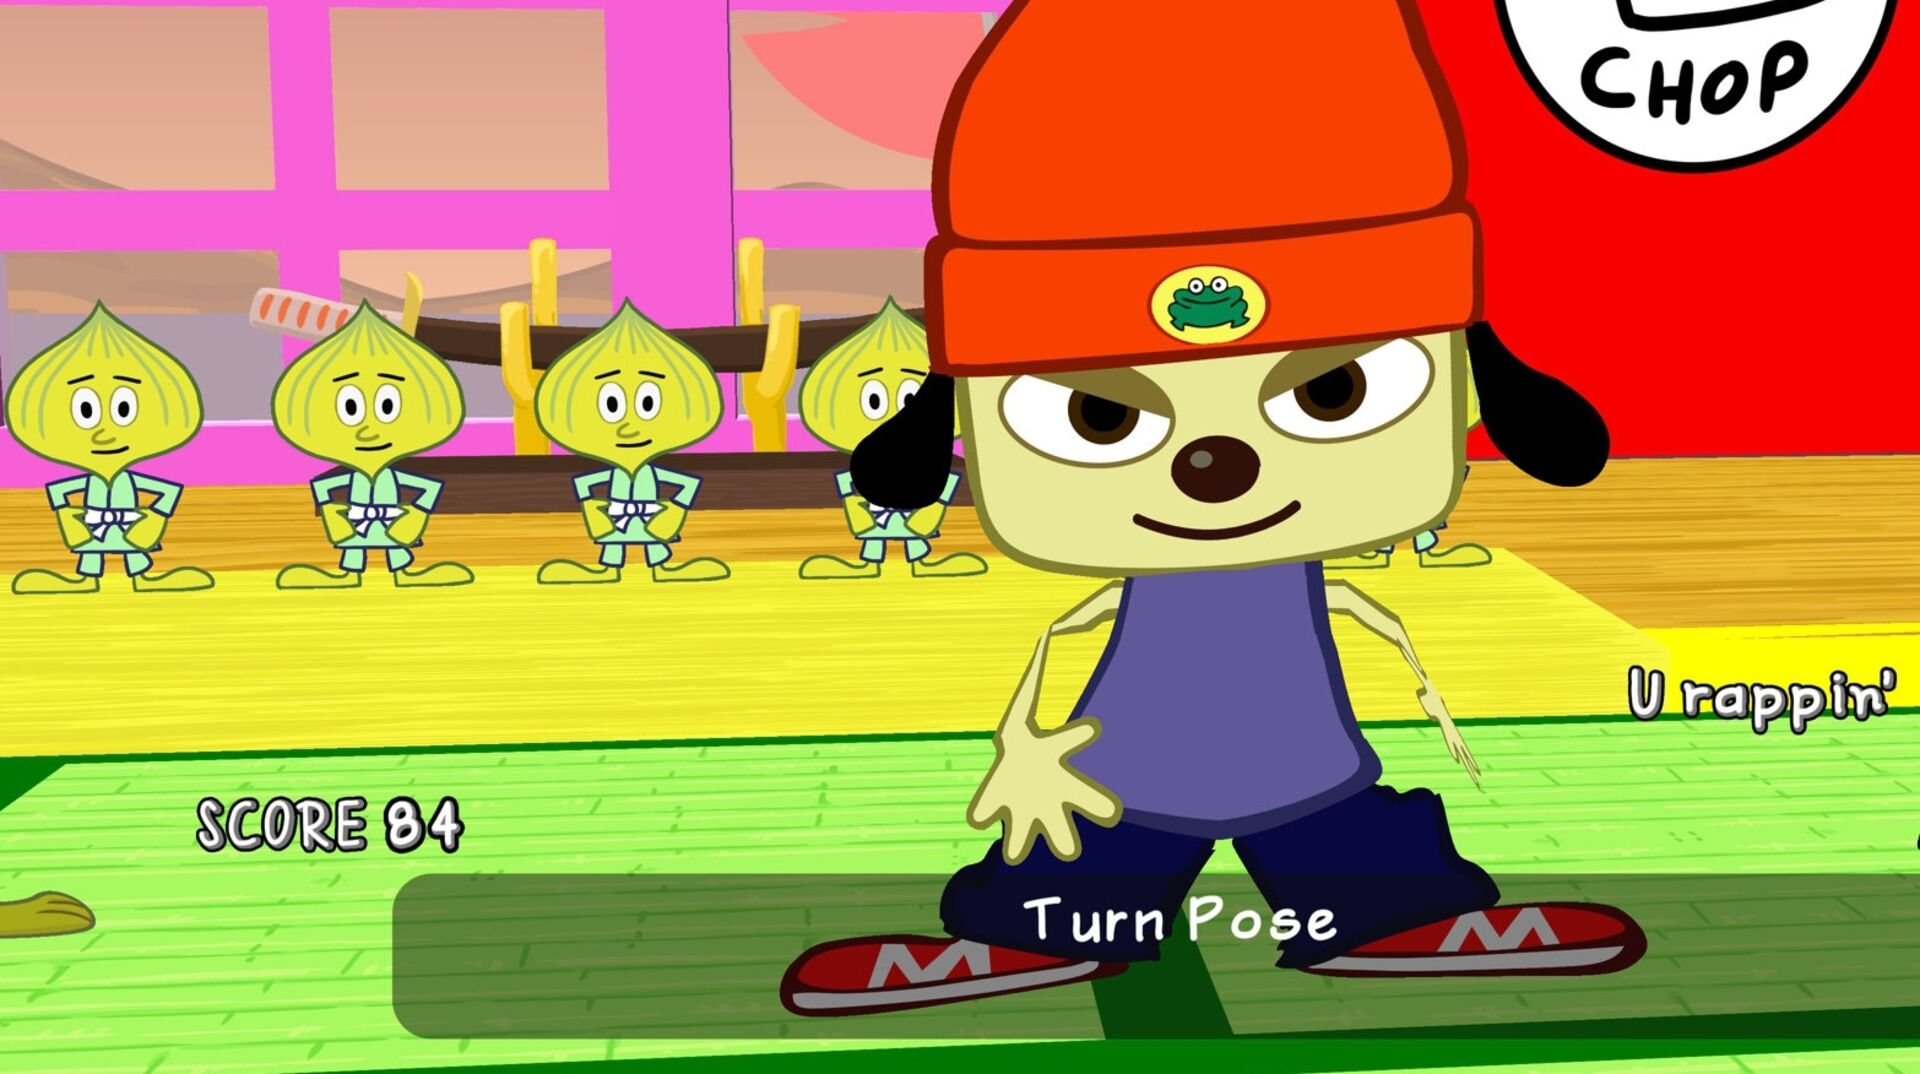 It looks like PS4 Parappa Remastered is the PSP game running